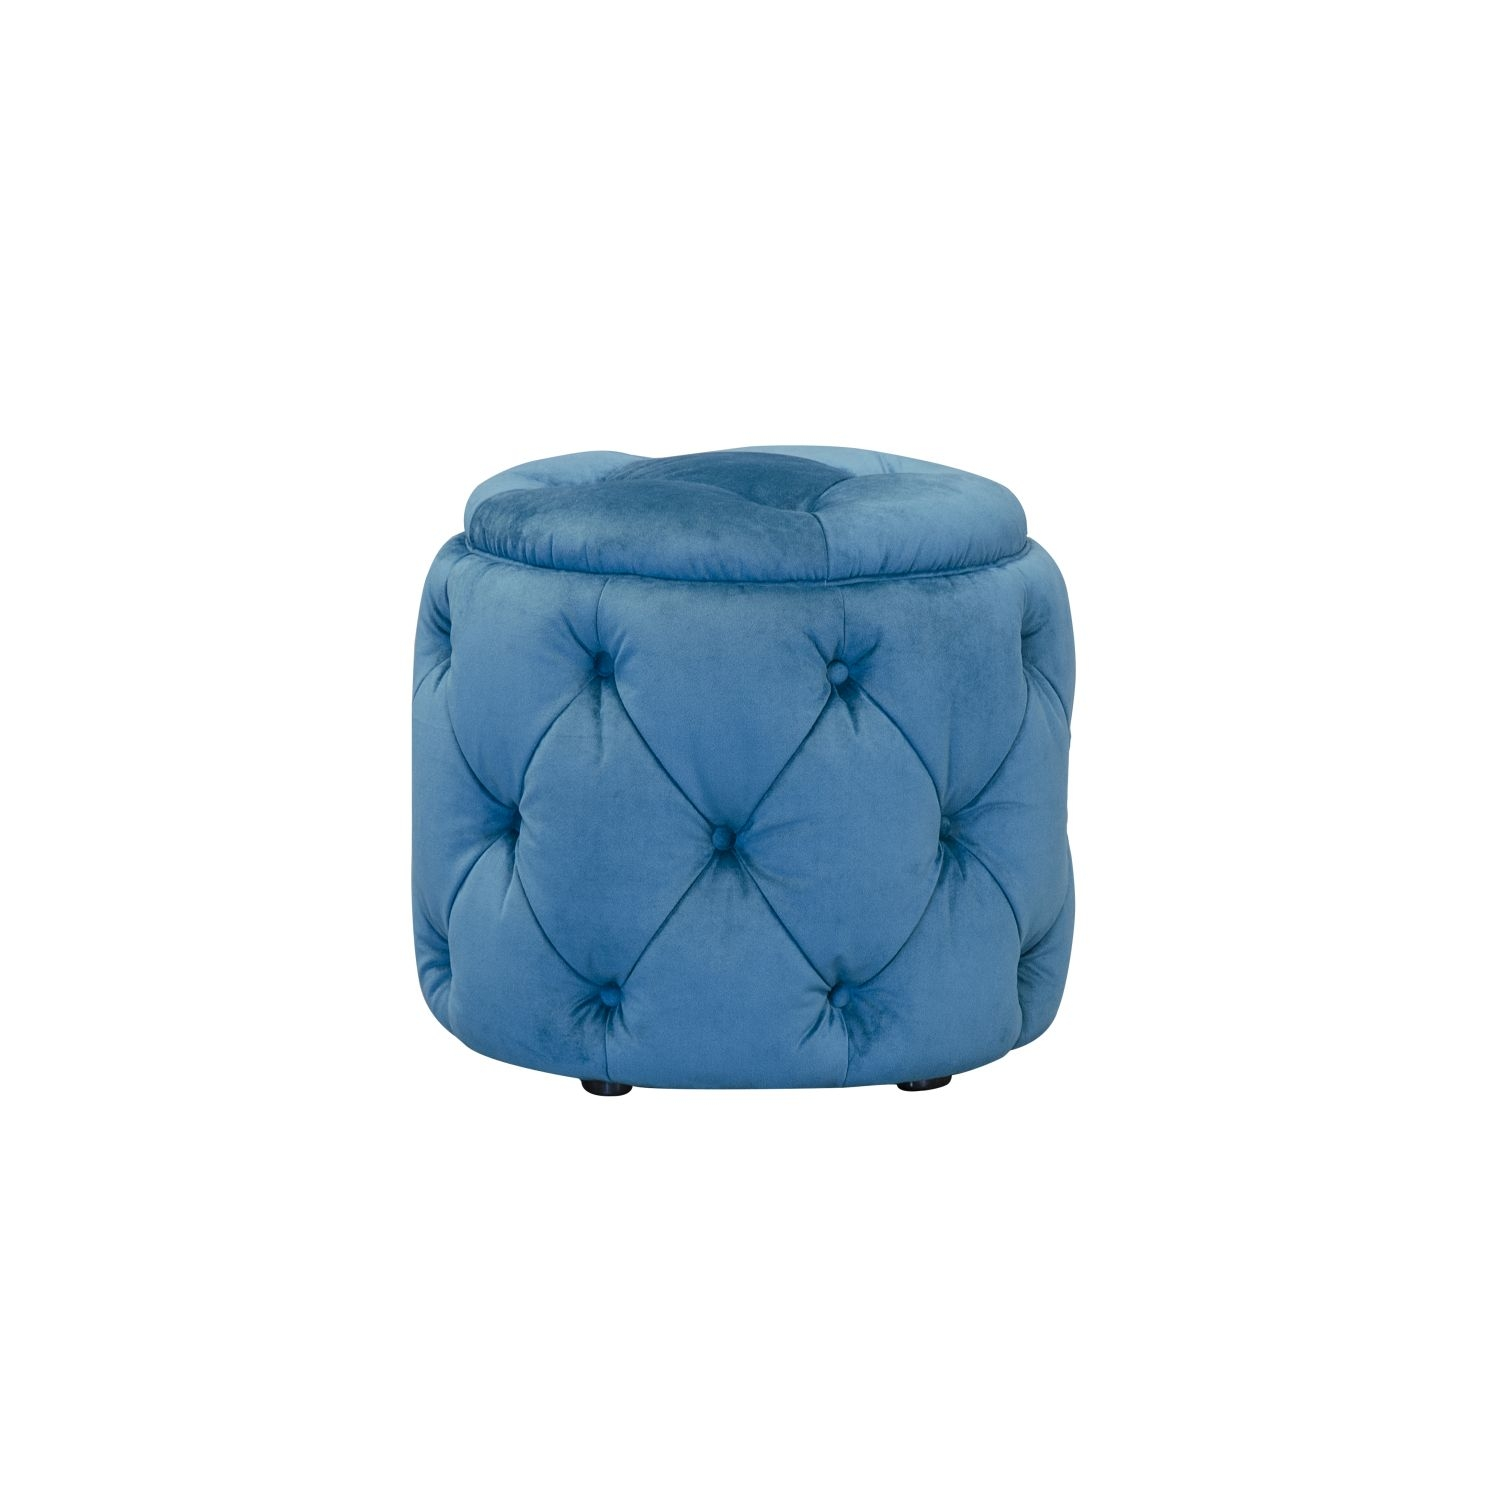 Image of Alexander & James Trixie Footstool